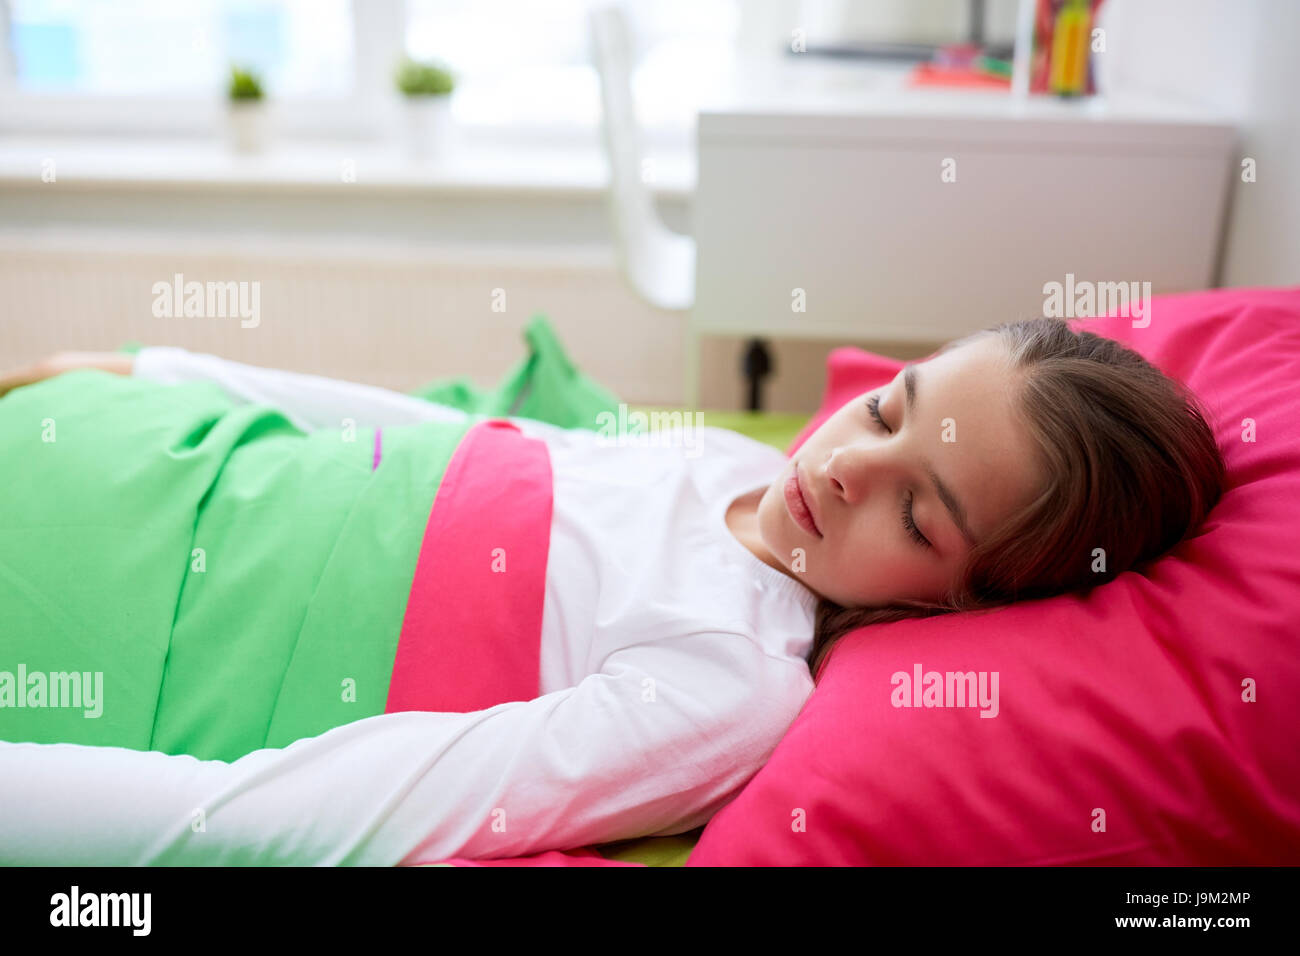 girl sleeping in her bed at home - Stock Image